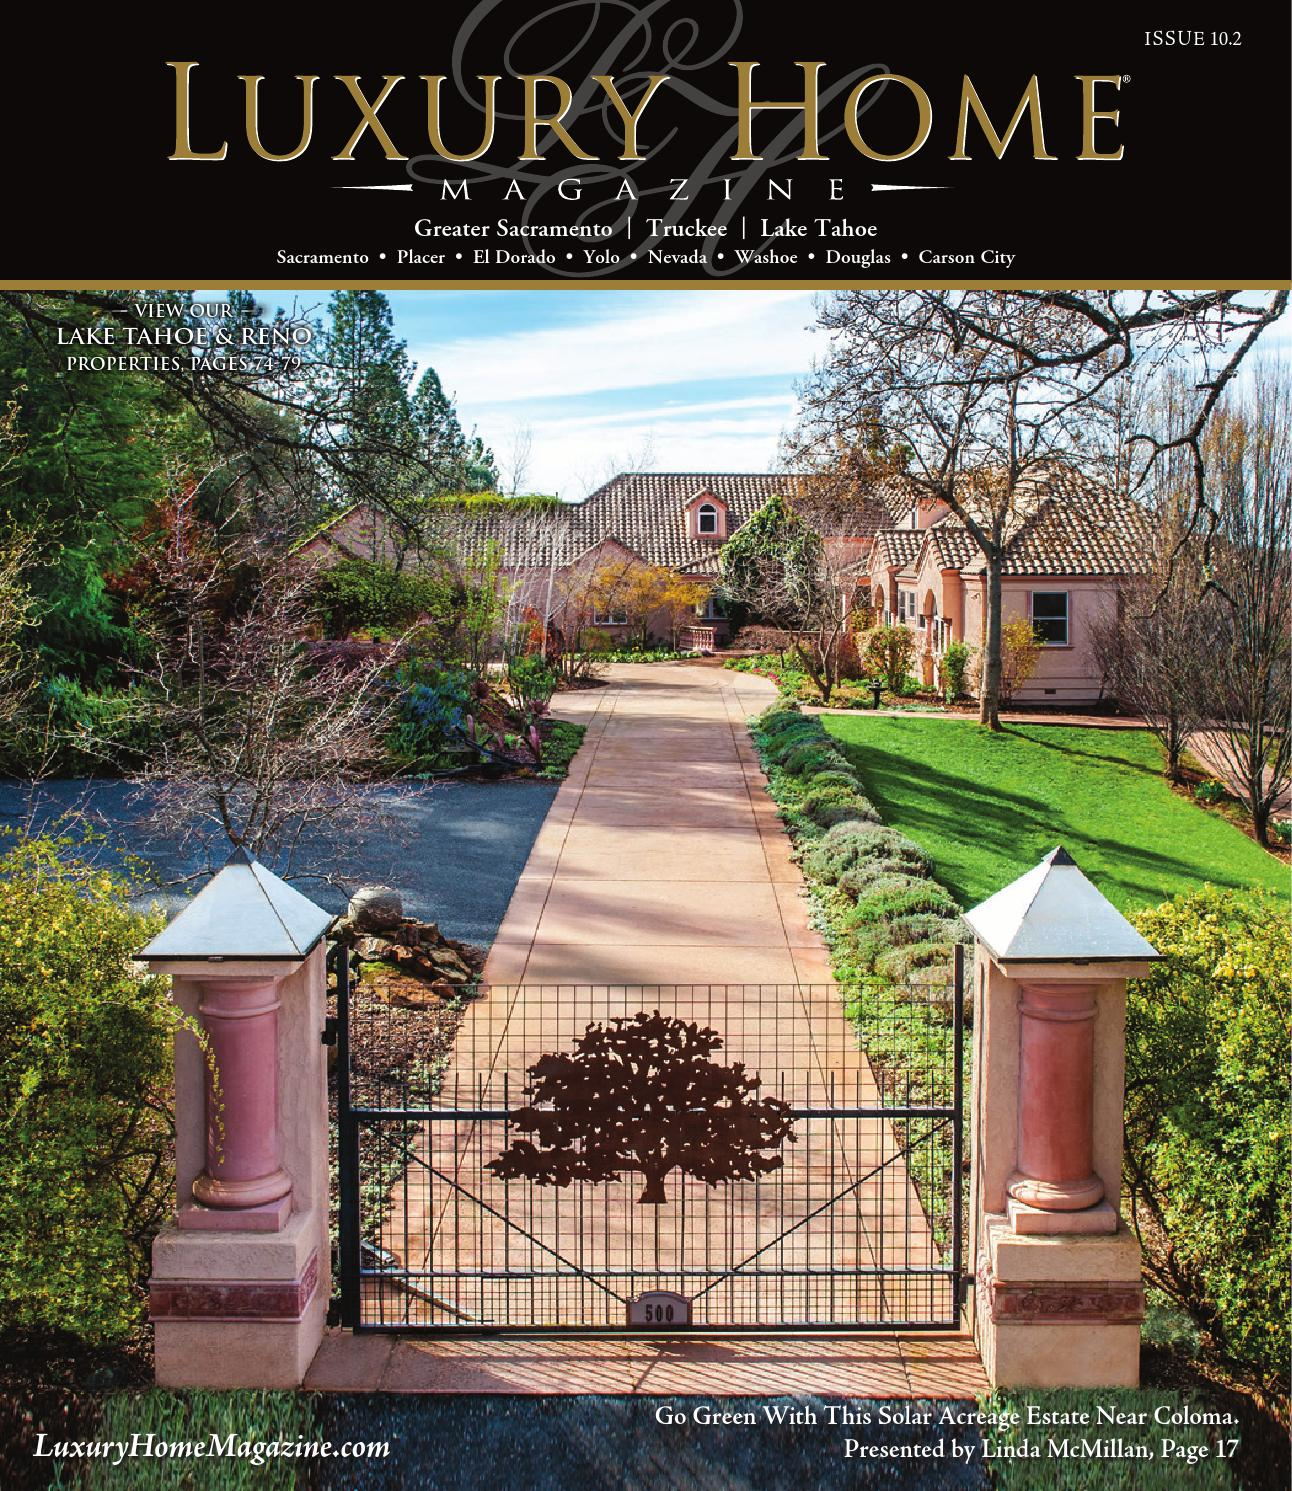 Luxury home magazine sacramento lake tahoe issue 10 2 by for Luxury home plans magazine